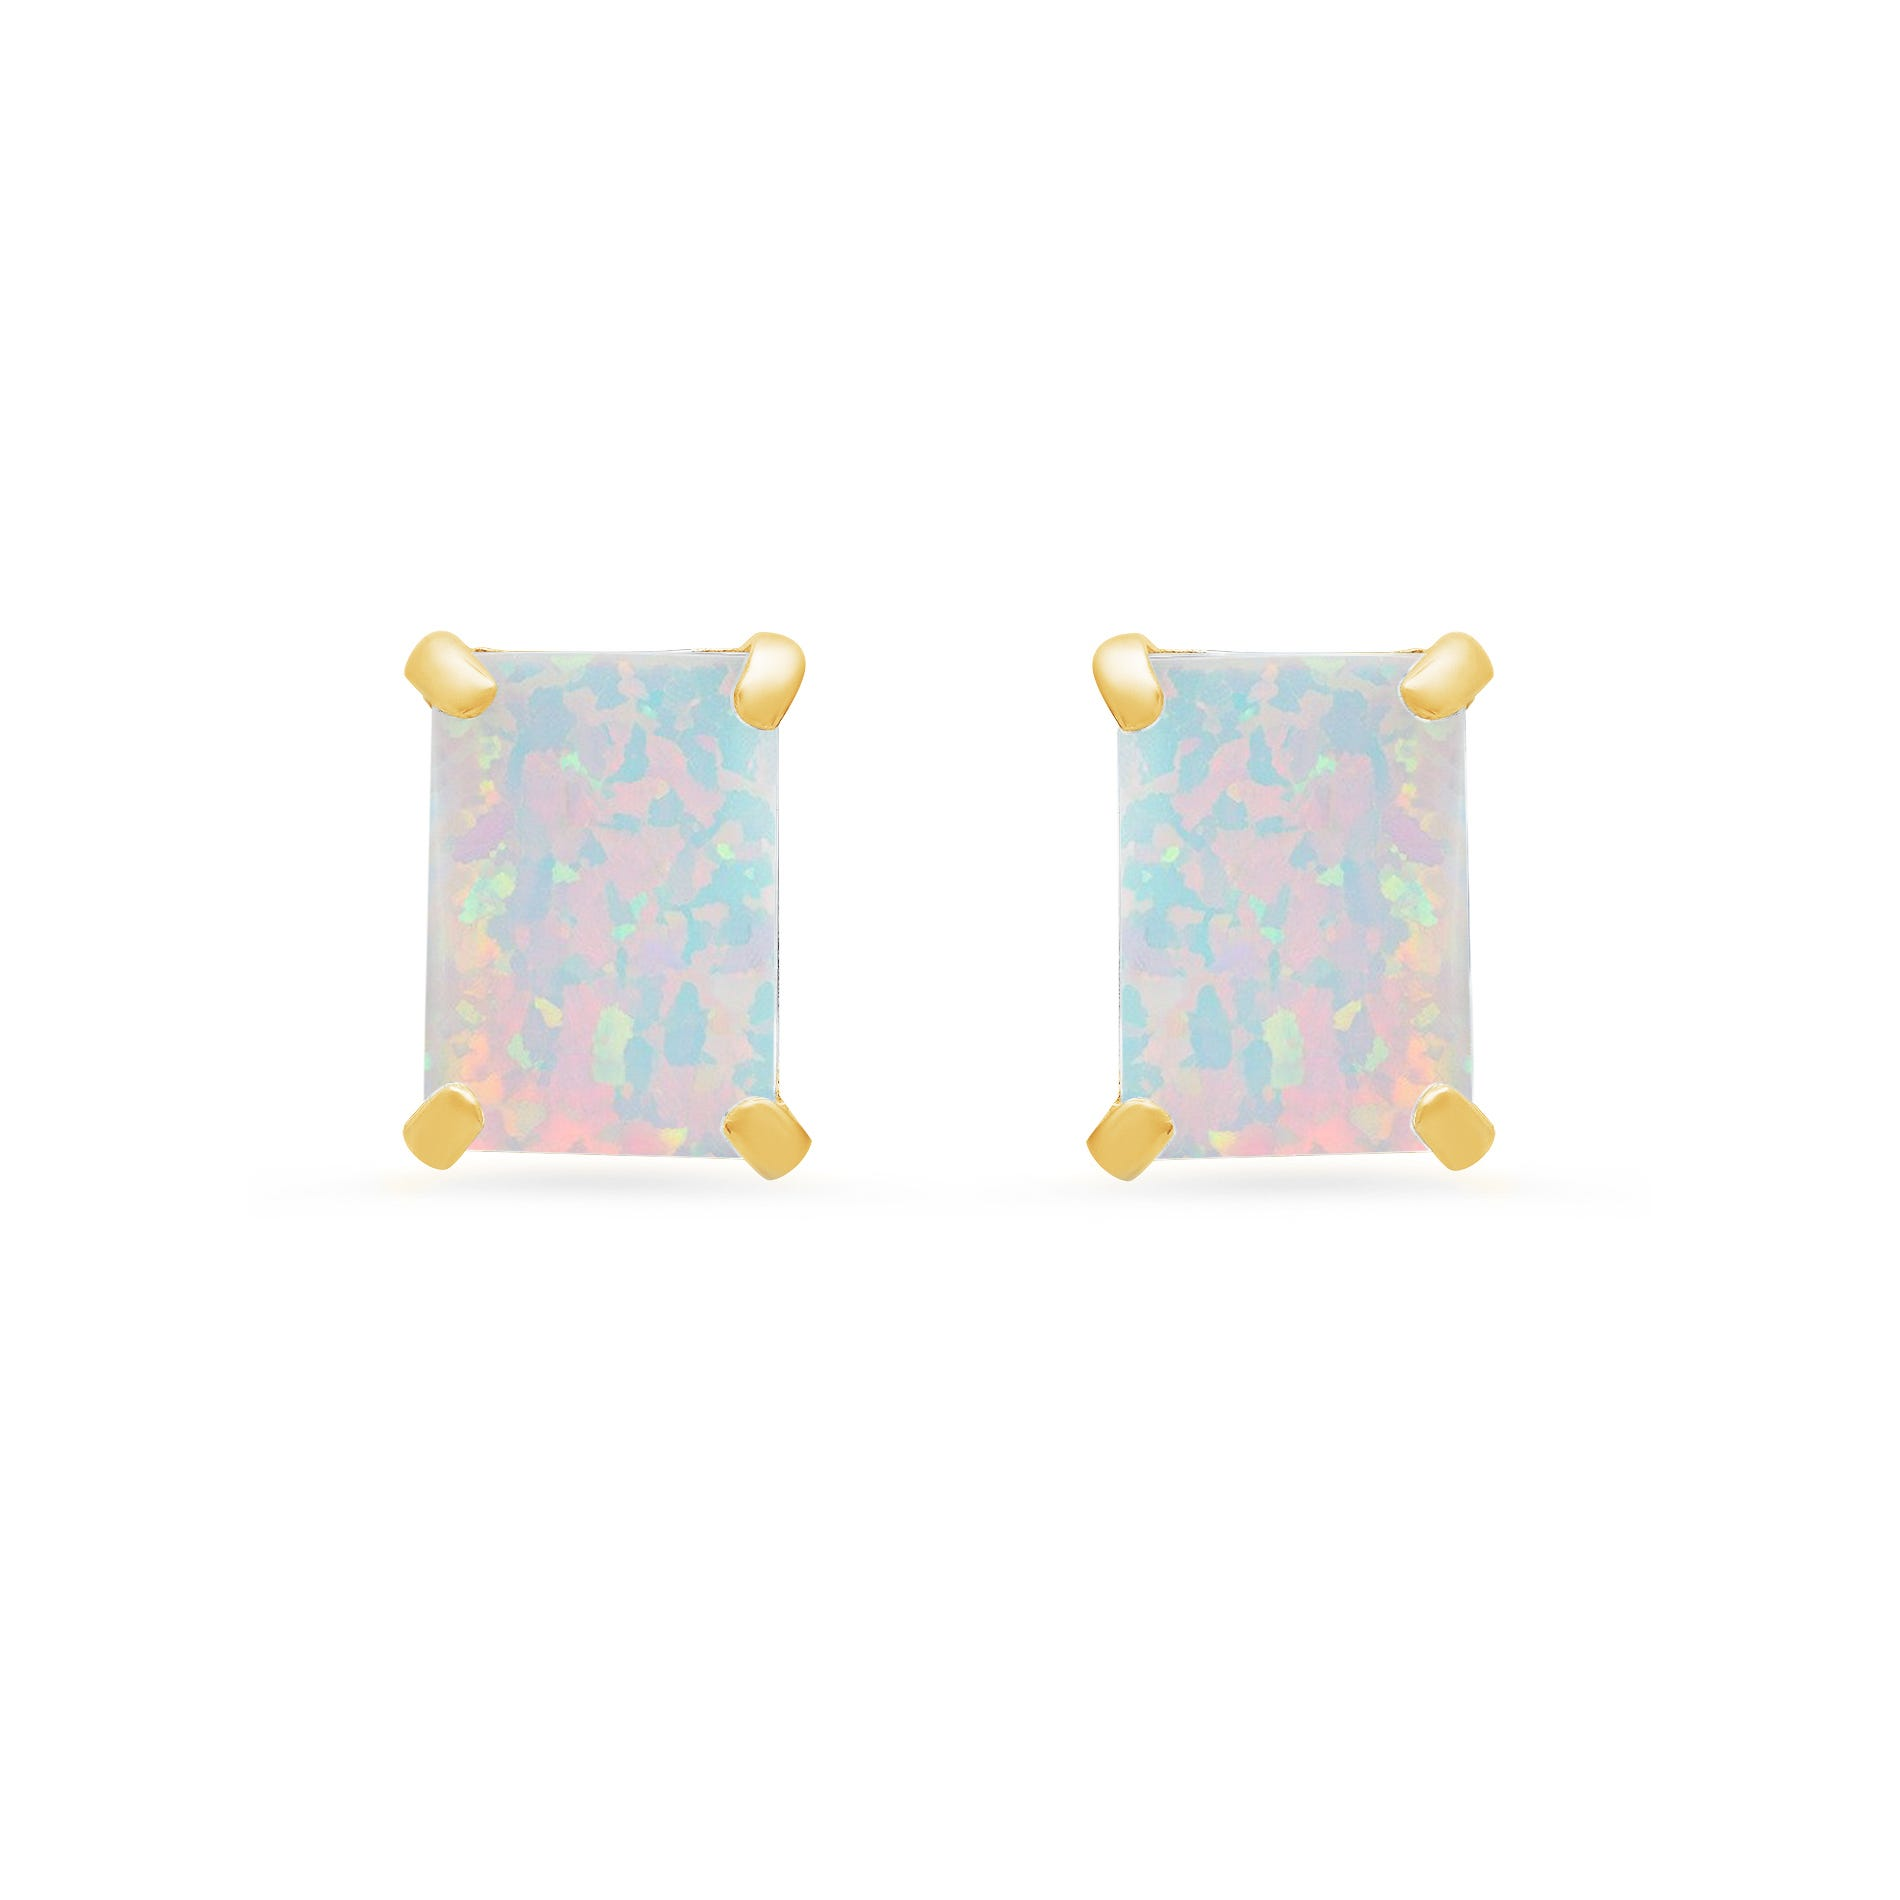 Emerald-Cut Created Opal Solitaire Stud Earrings in 14k Yellow Gold